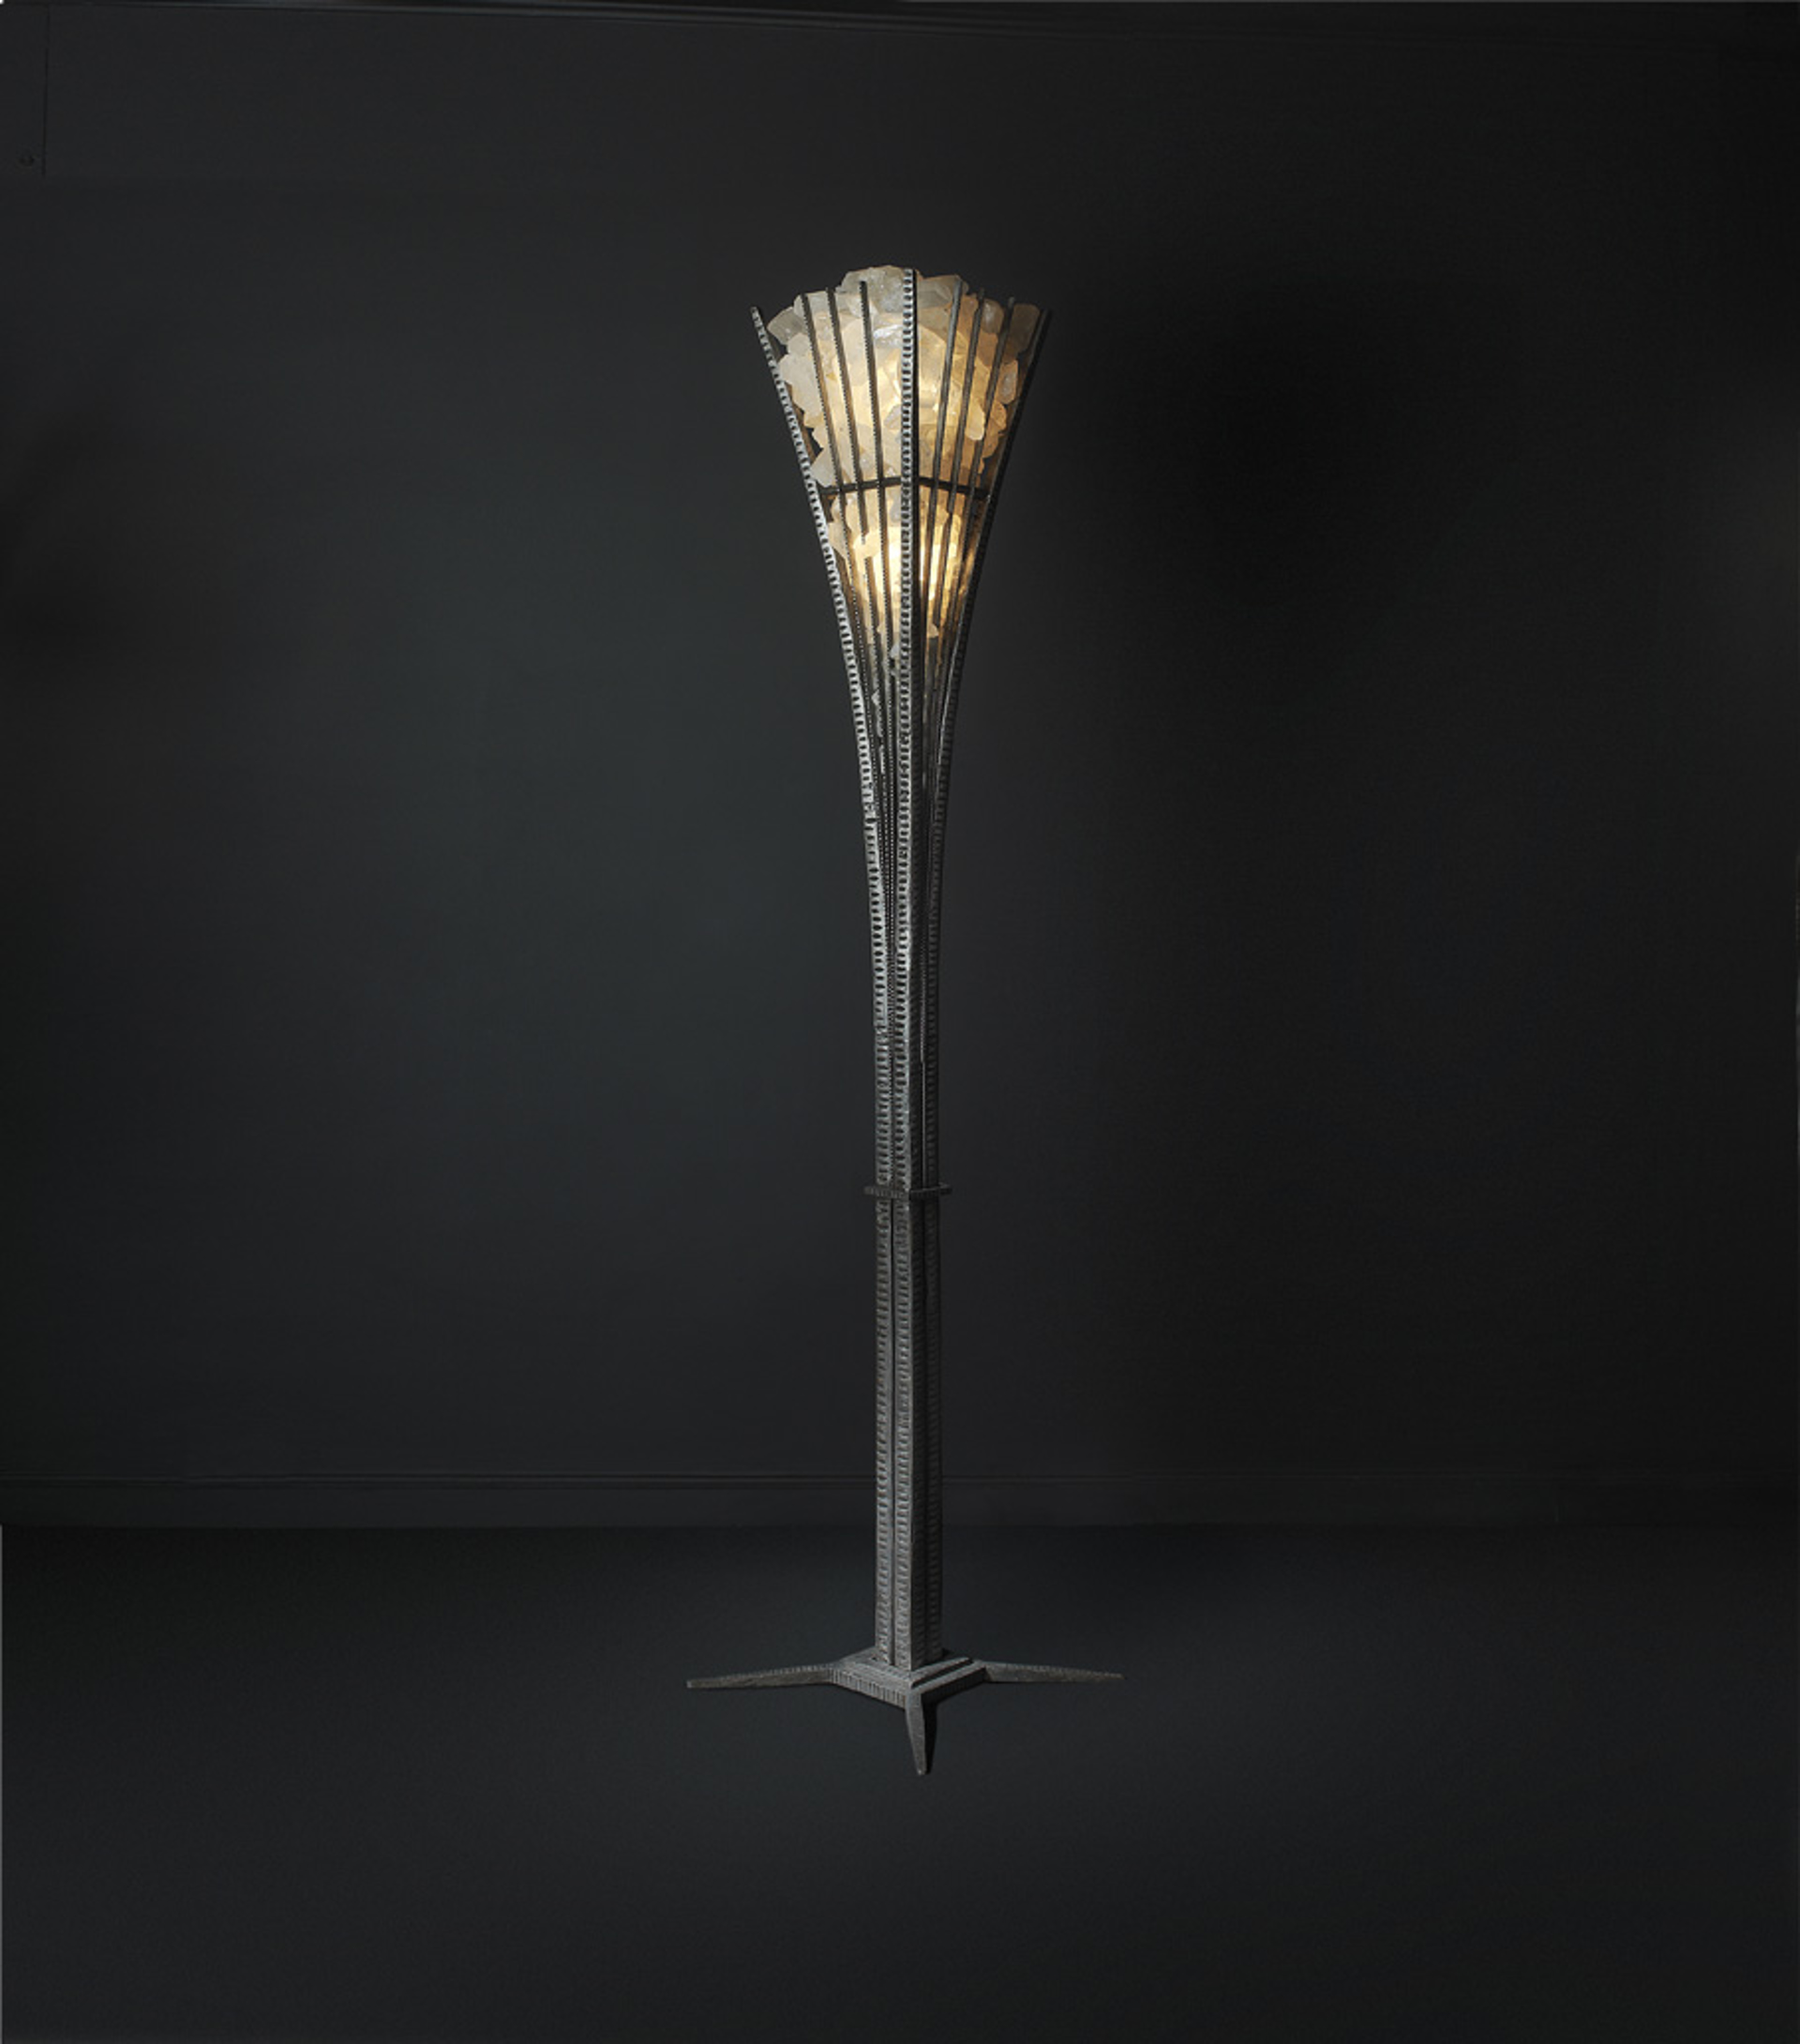 Floor lamp by Sylvain Subervie